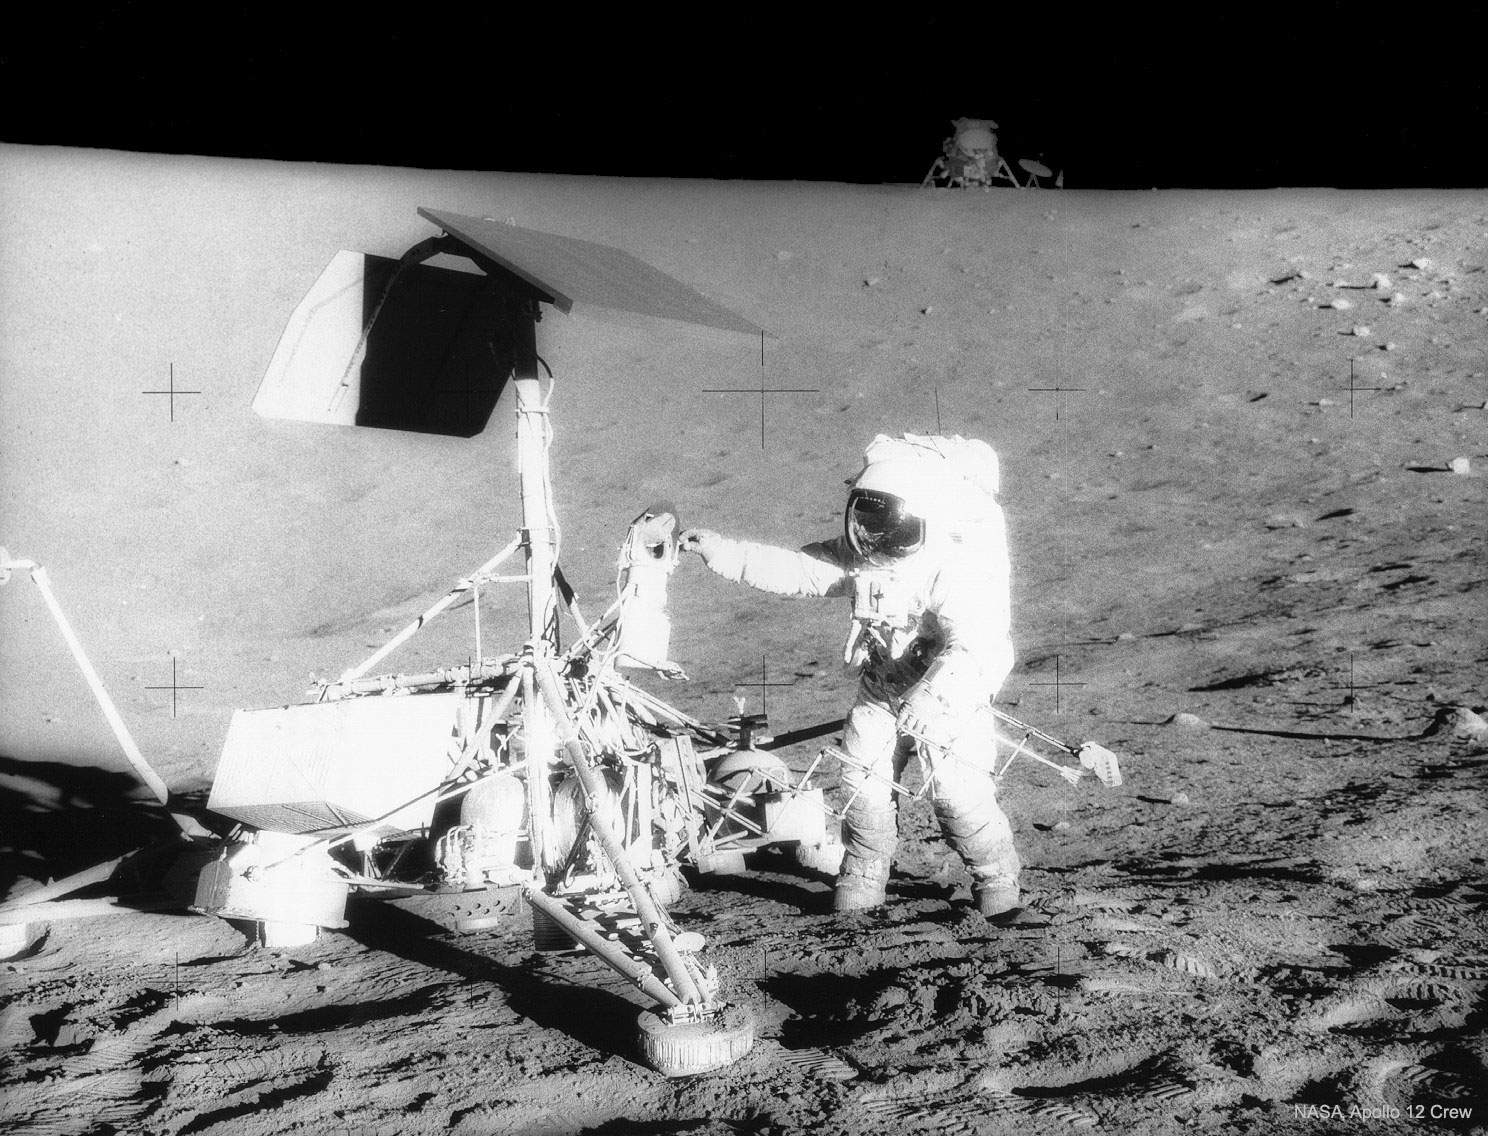 Apollo 12 – 50th Anniversary Retrospective NASA's 2nd Human Moon Landing: Gallery